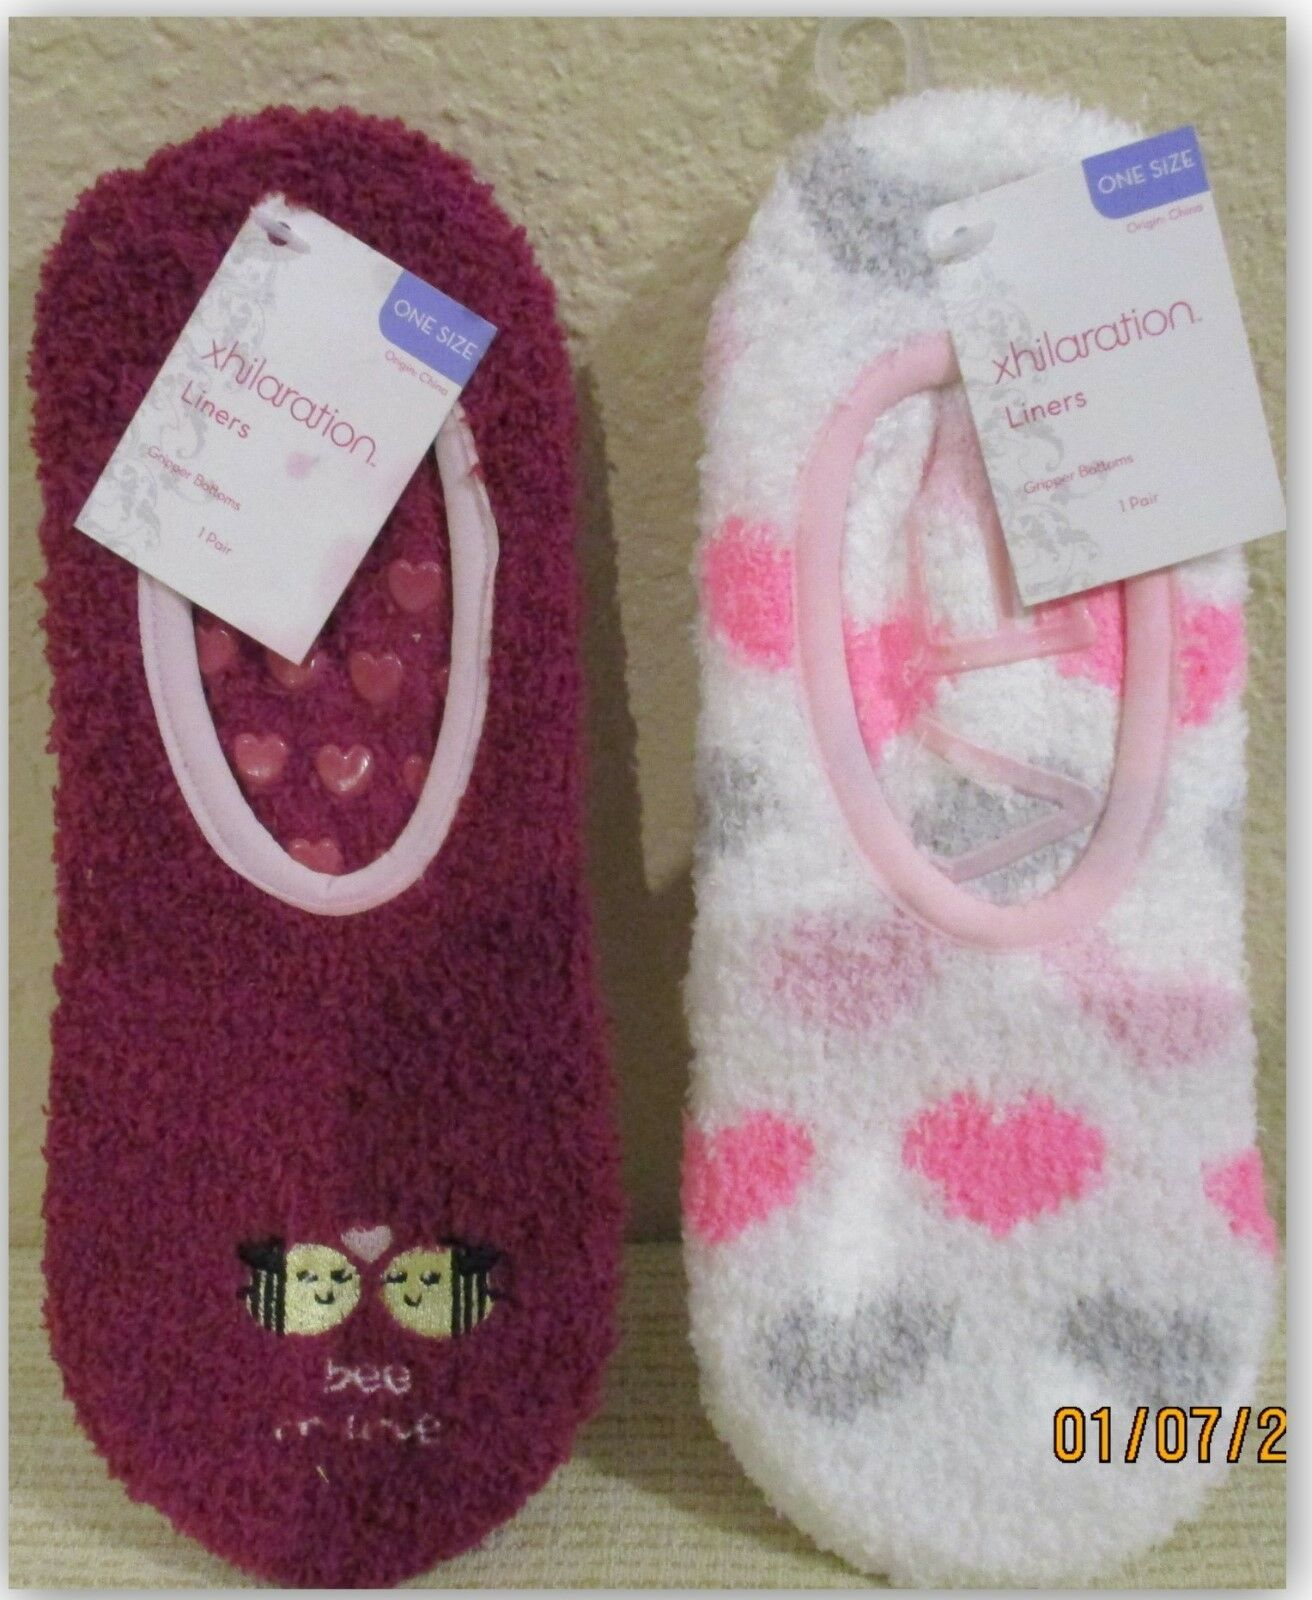 2 PAIR Xhilaration Valentines Day Cozy Fuzzy Slipper Socks L